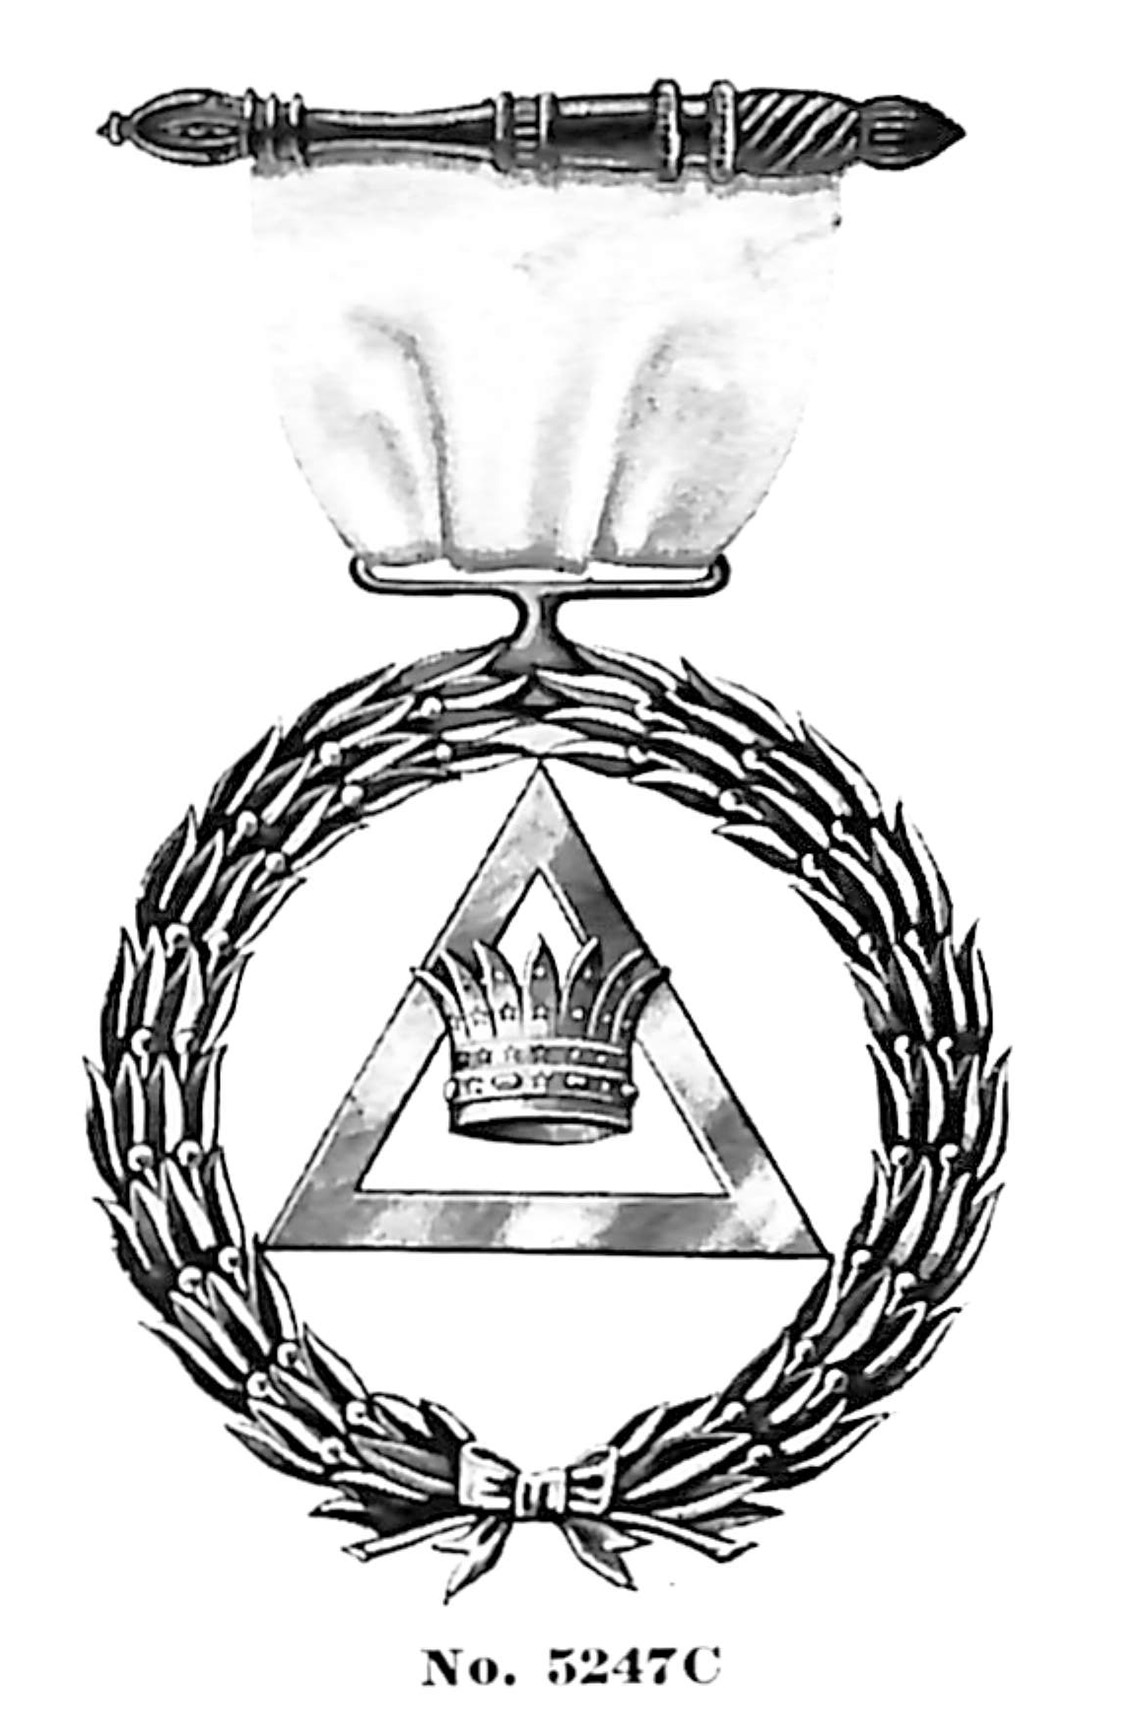 Rose Croix item no. 5247C